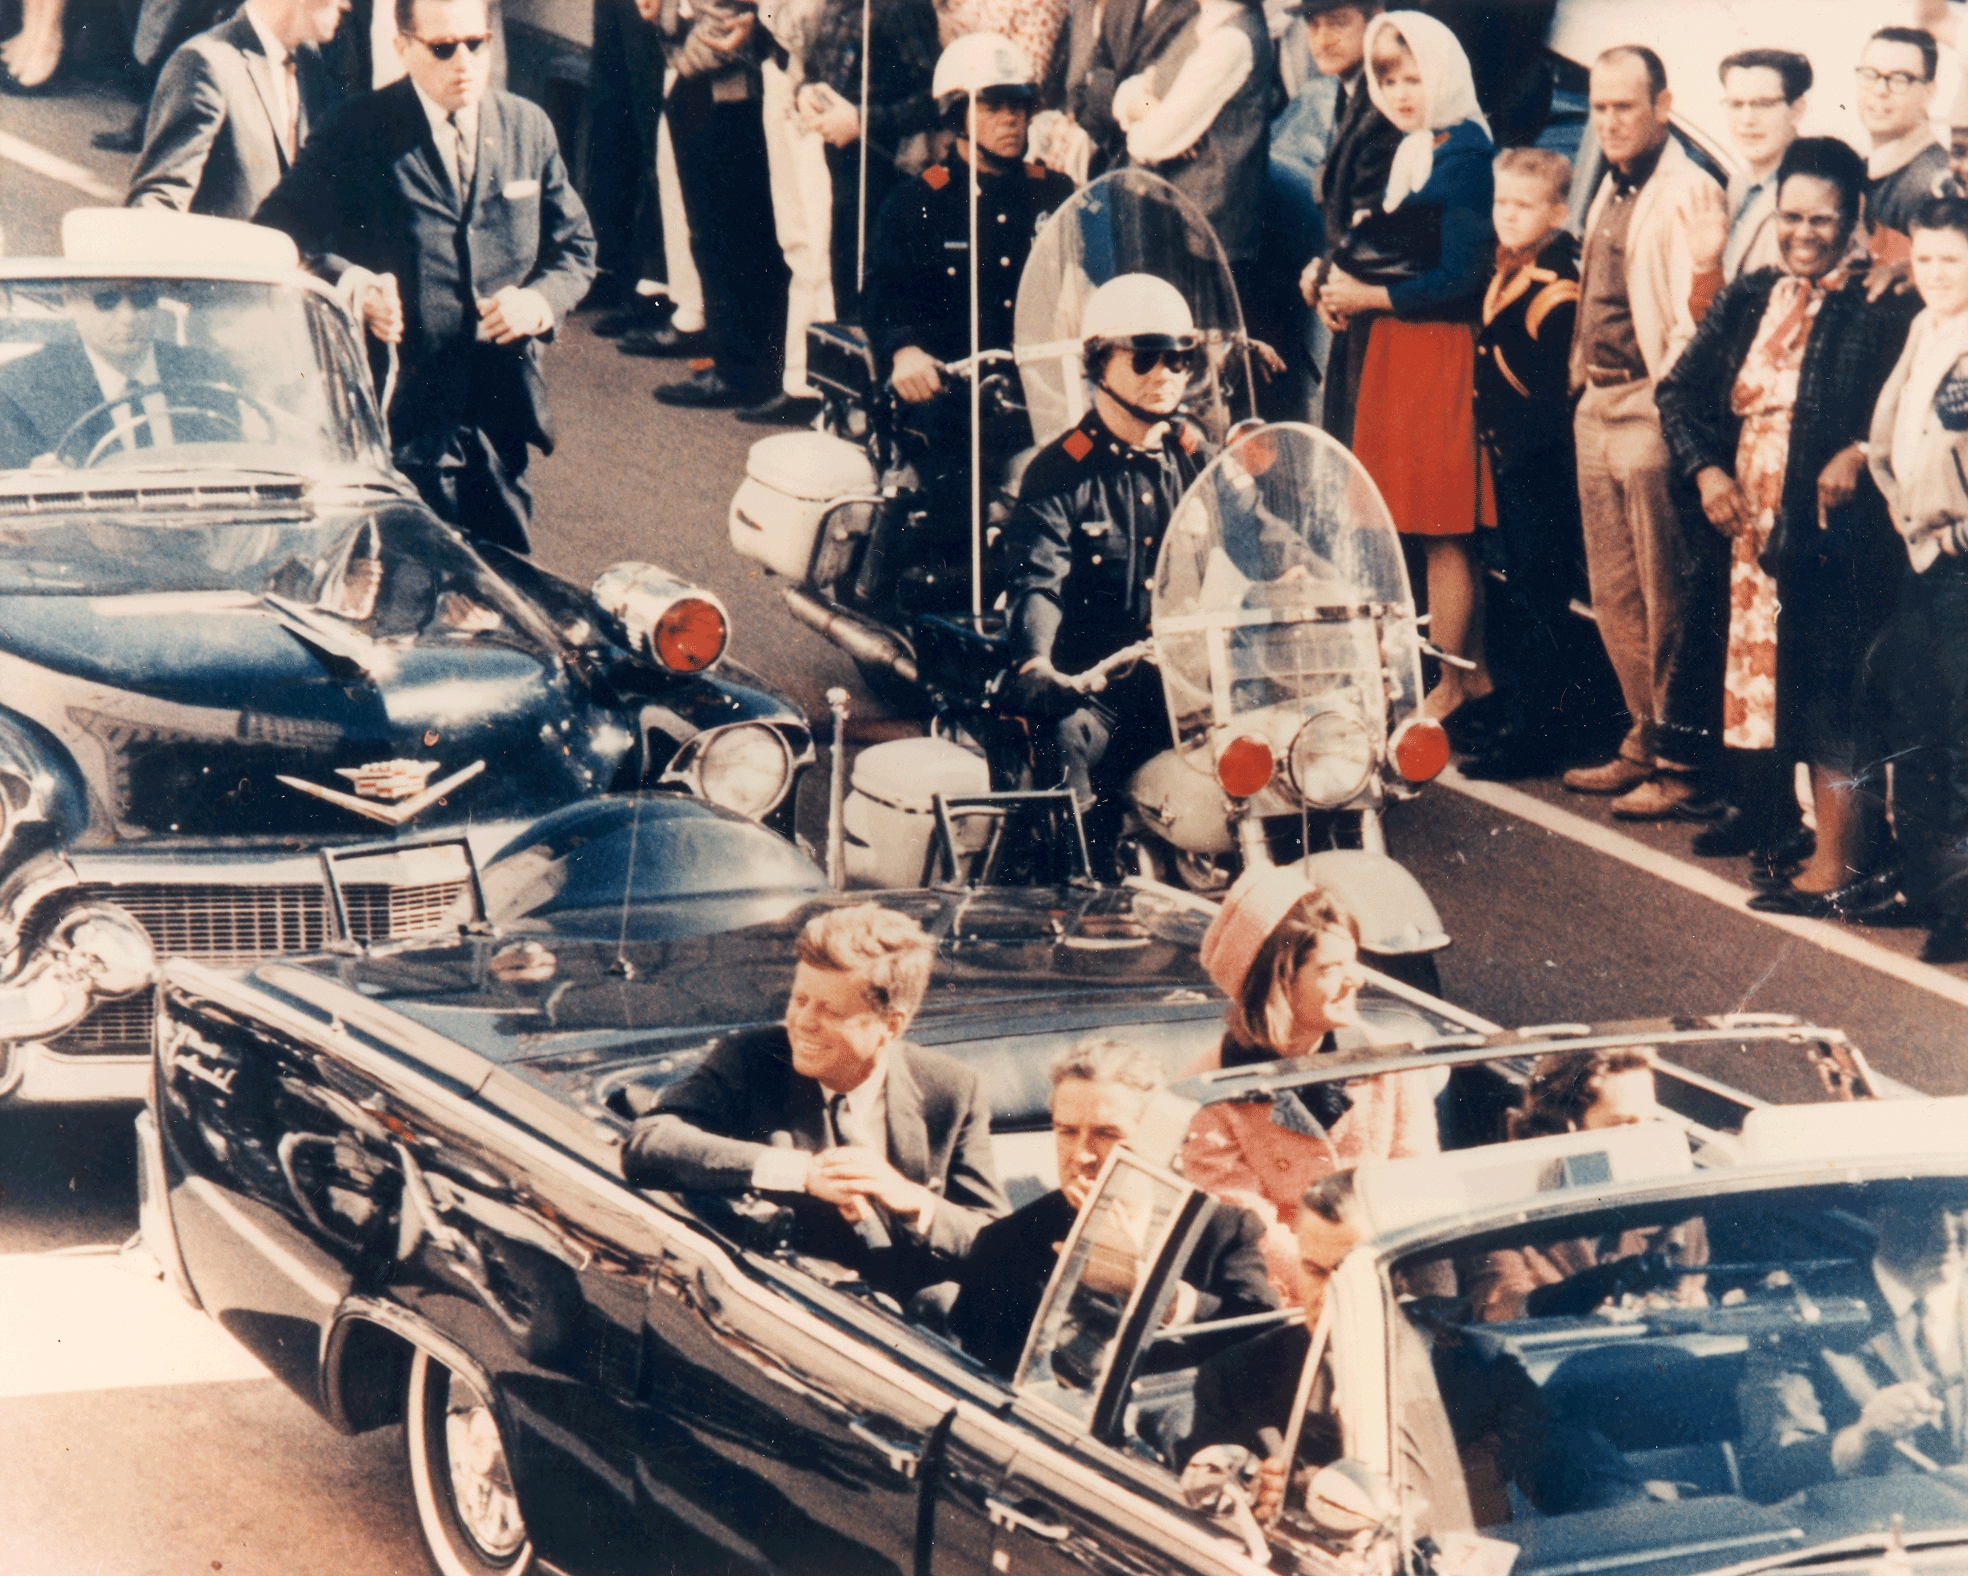 President Kennedy and the first lady riding through Dealey Plaza just minutes before the gun shot.